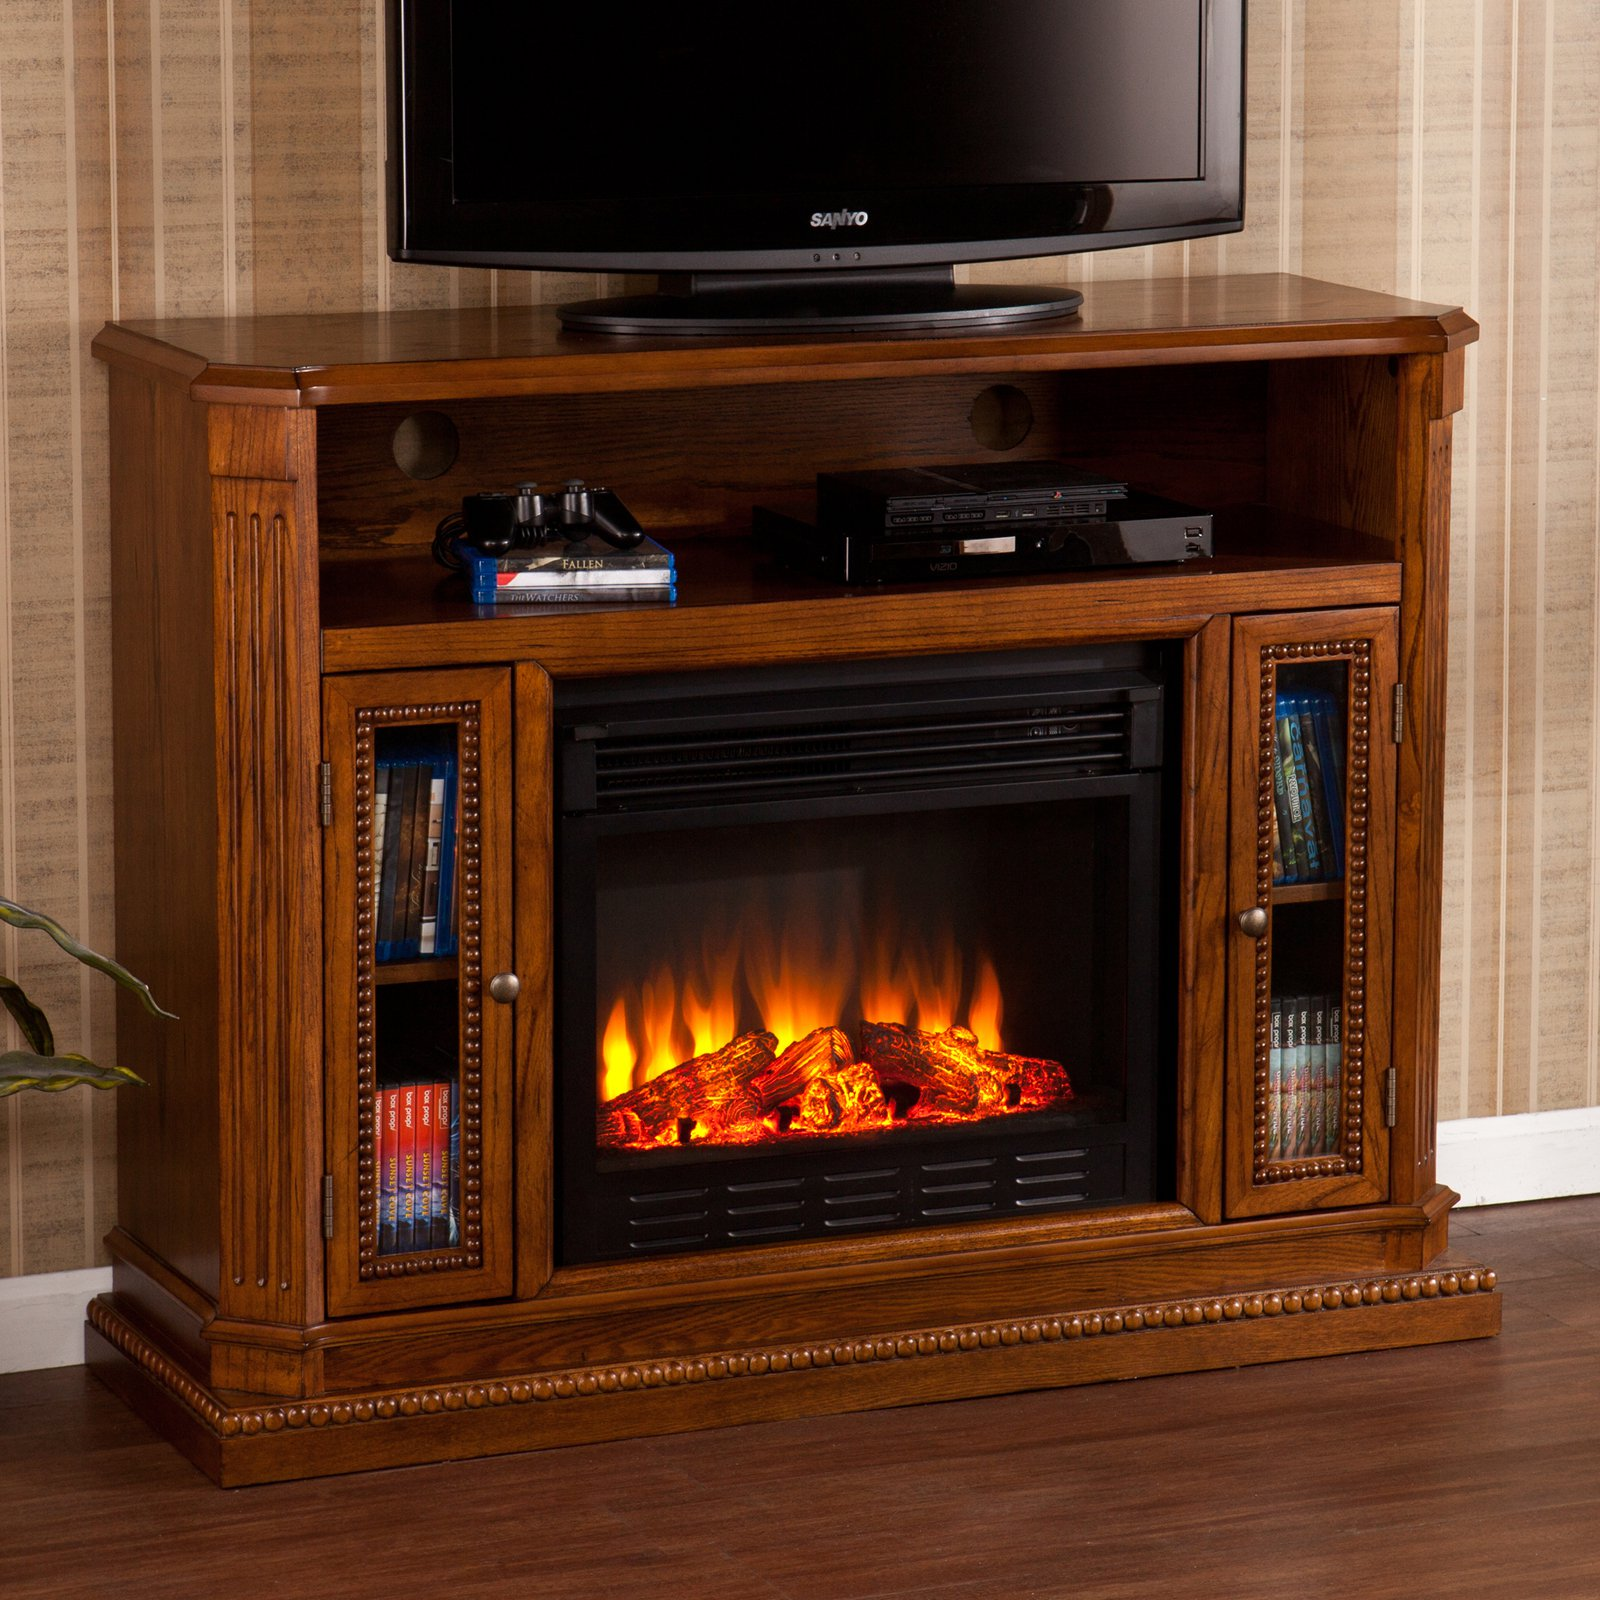 Southern Enterprises Atkinson Rich Brown Oak Electric Fireplace Media Console